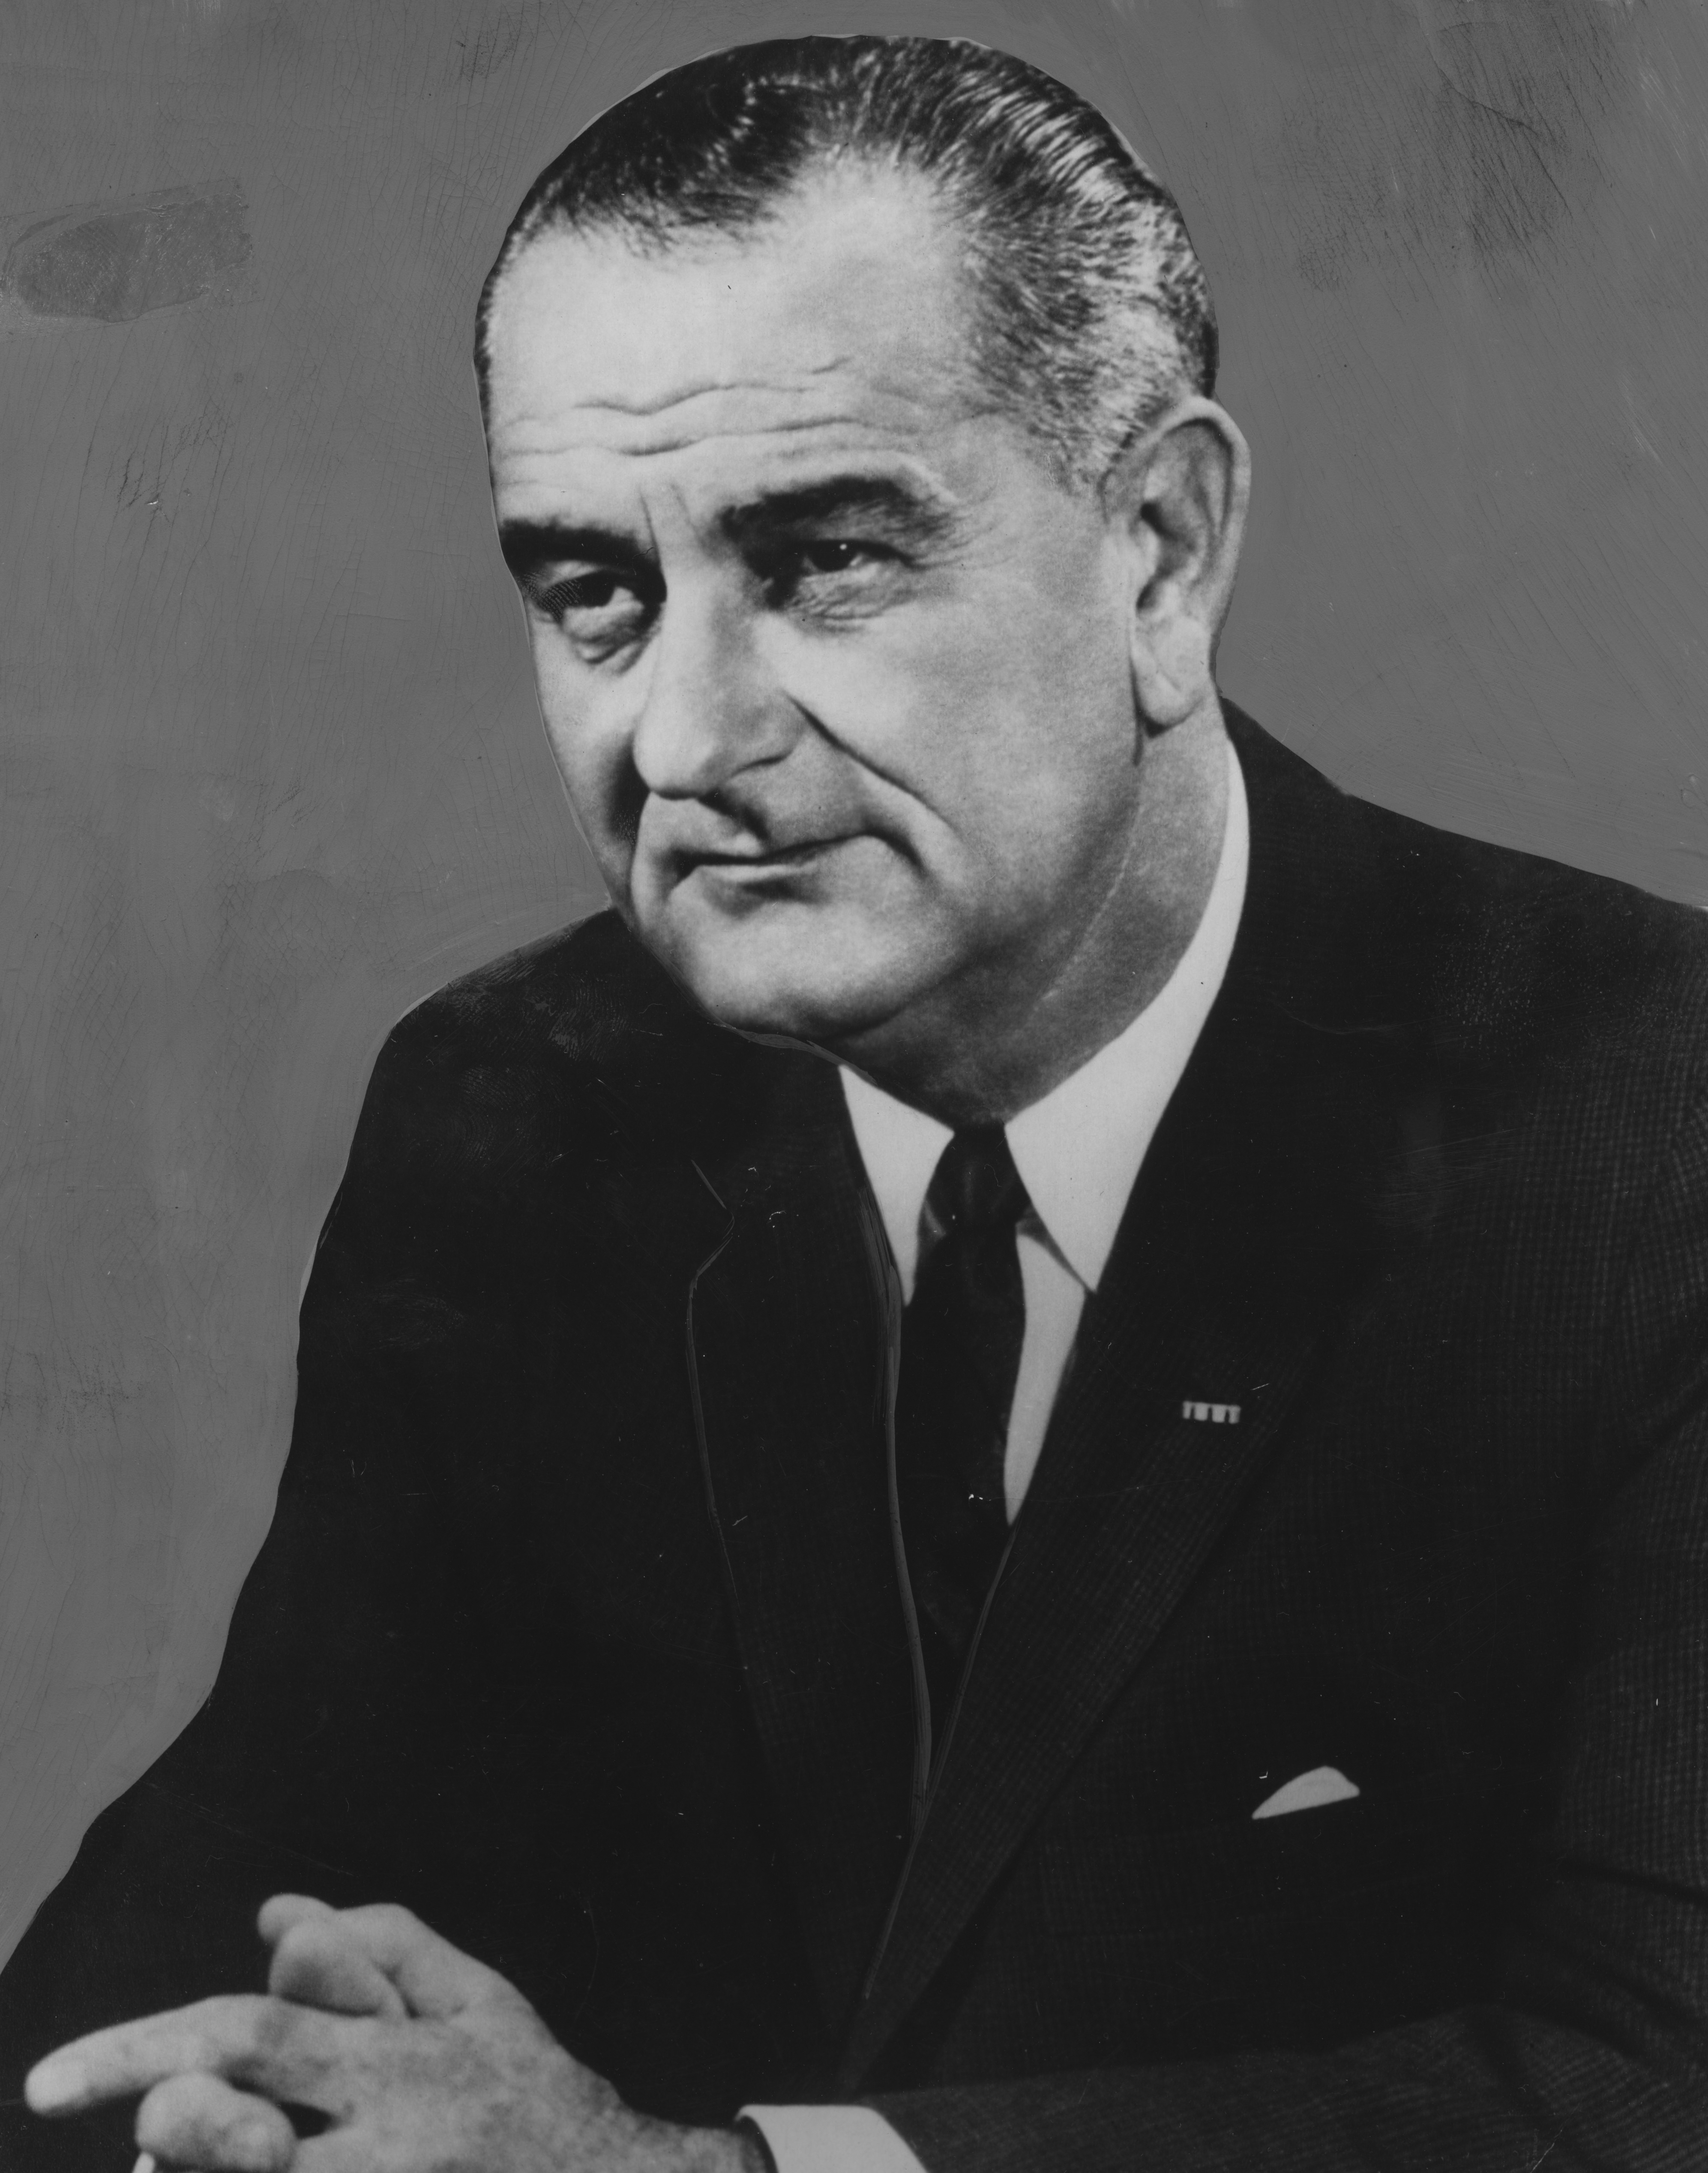 History News Network | LBJ Was a Great President